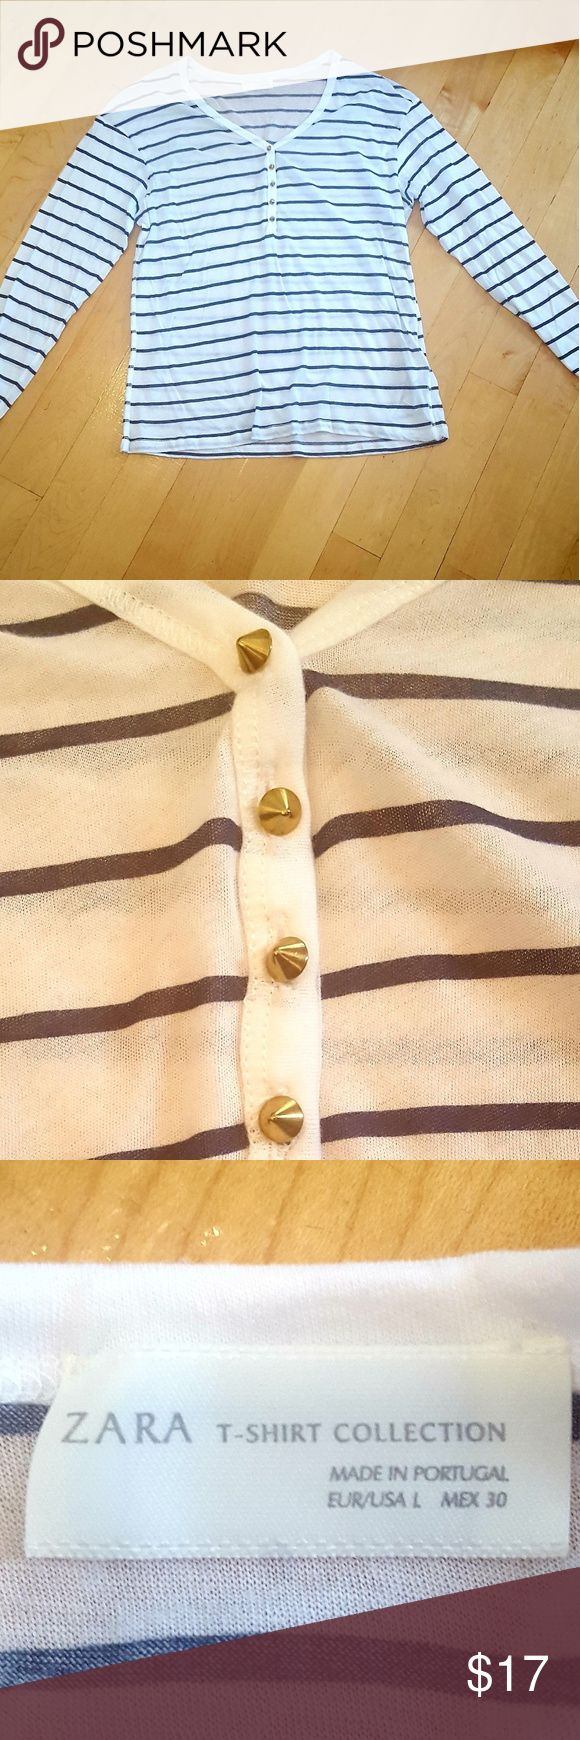 White Zara Top w/Navy Stripes White long sleeve top, from Zara. Navy blue stripes. Gold spike buttons. NWOT. Never worn. Very lightweight and soft. Zara Tops Tees - Long Sleeve